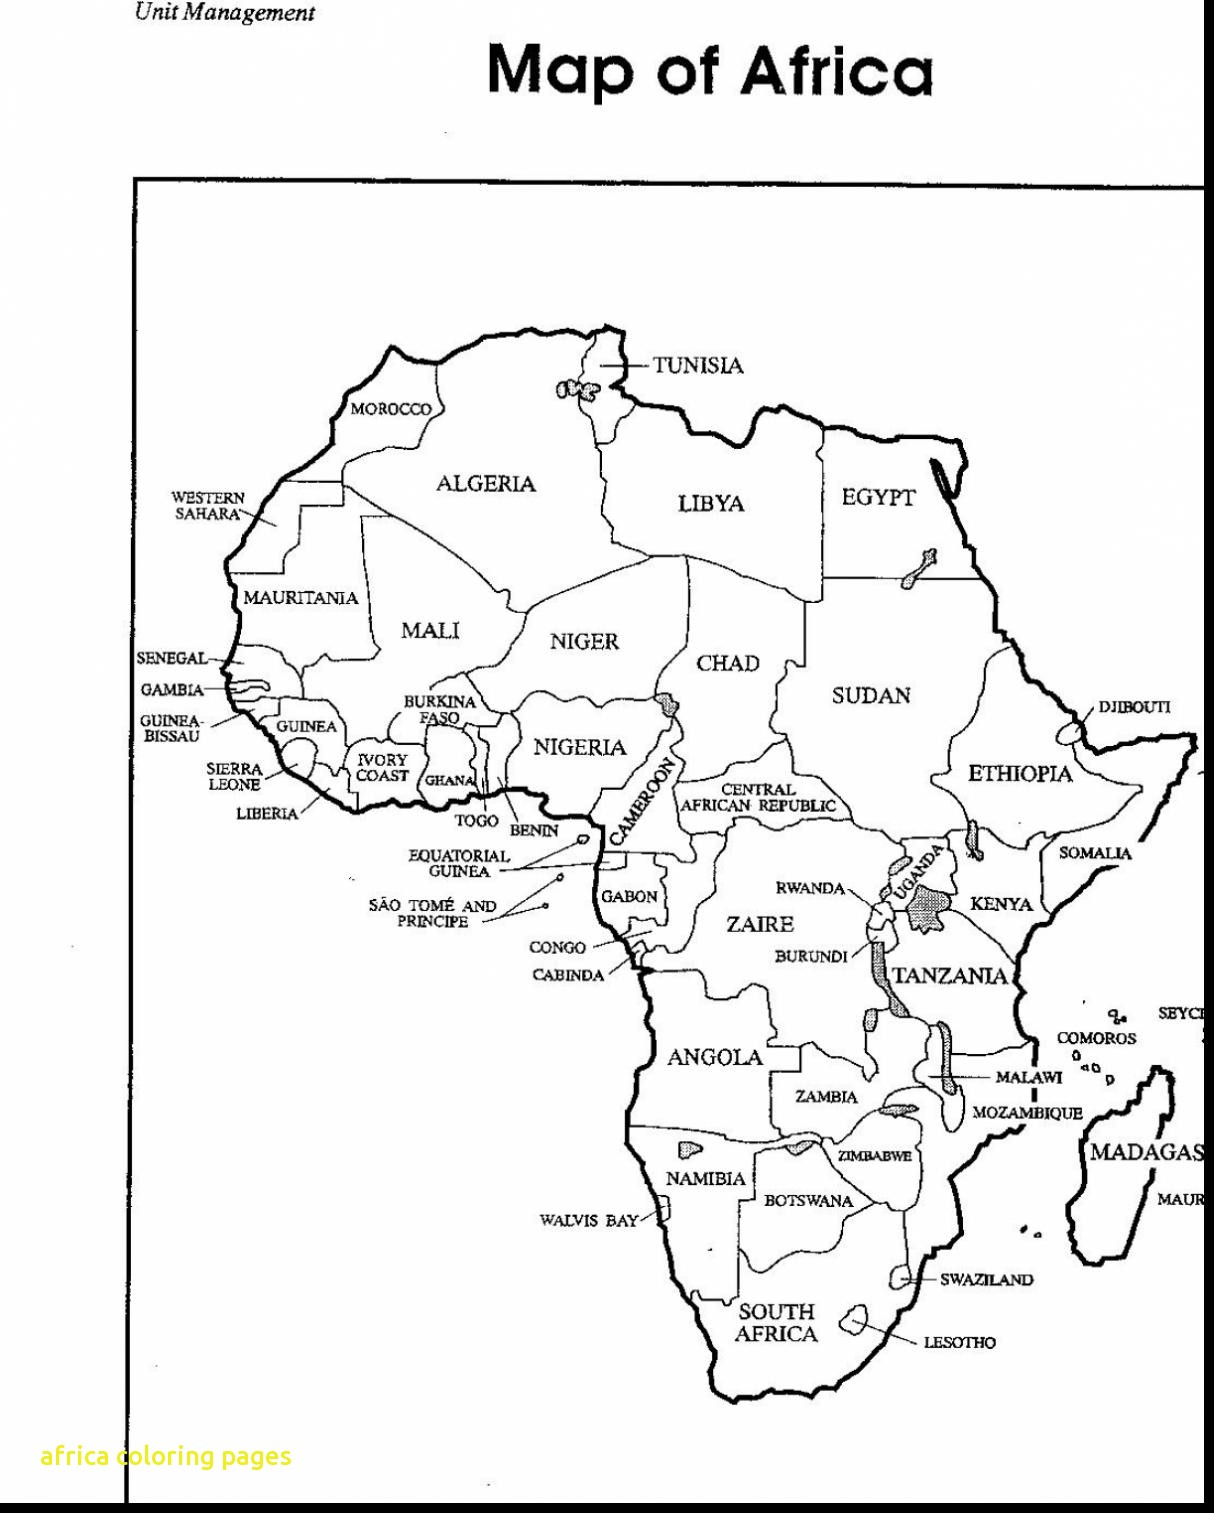 coloring africa continent coloring pages classroom doodles coloring africa